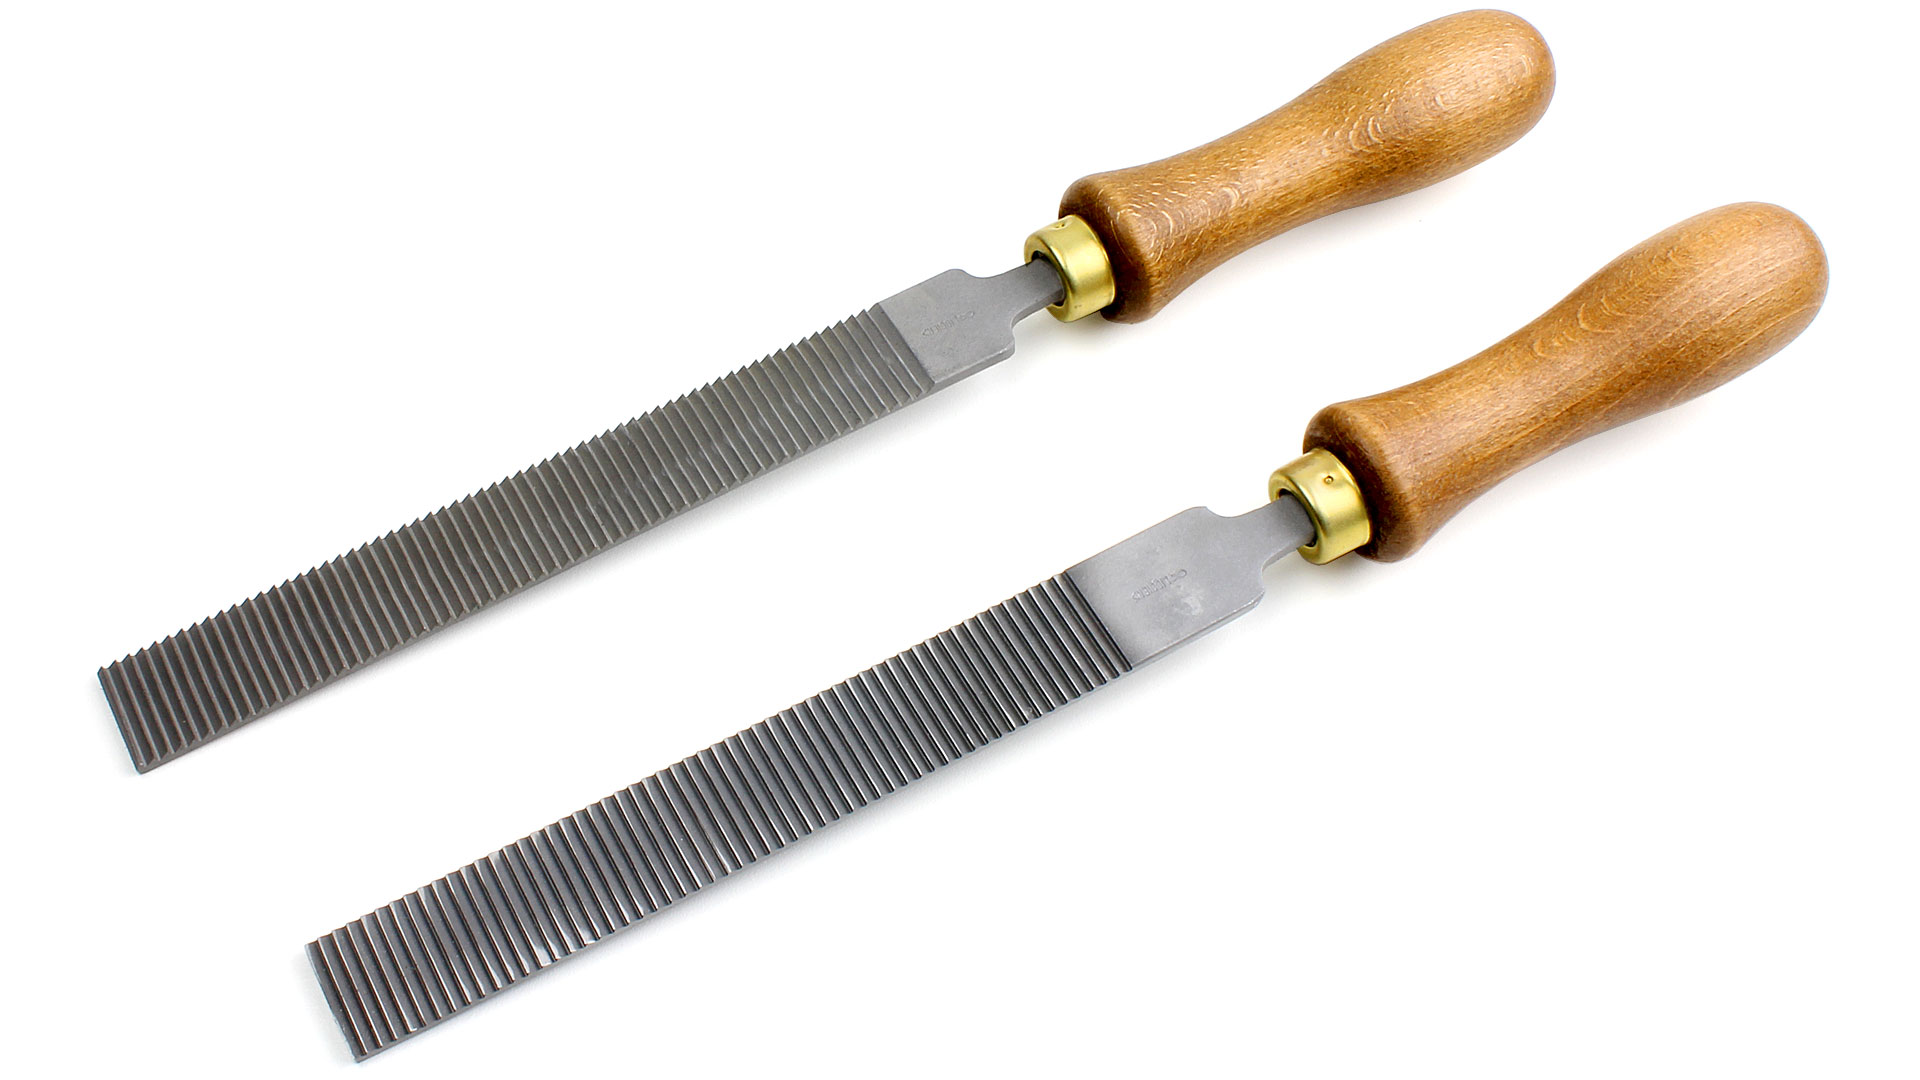 Woodworking Cranked Float Wood Rasp File Carpentry Carving Hand Tool Push Stroke